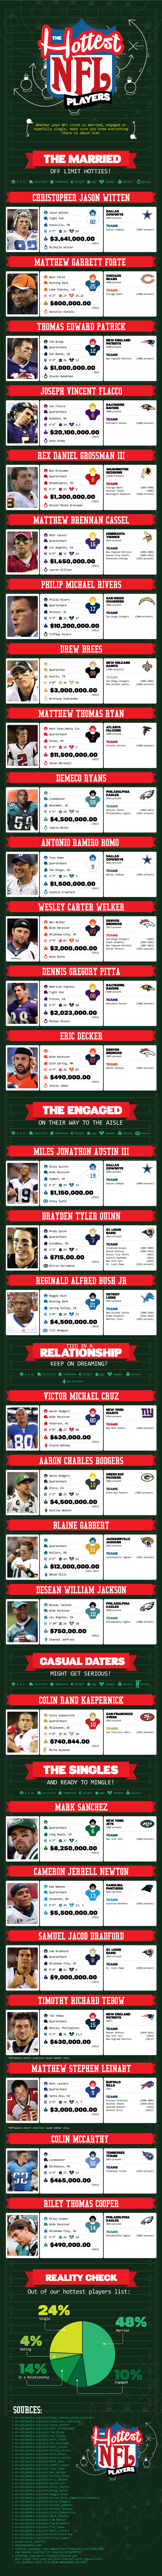 Infographic: The Hottest NFL Players